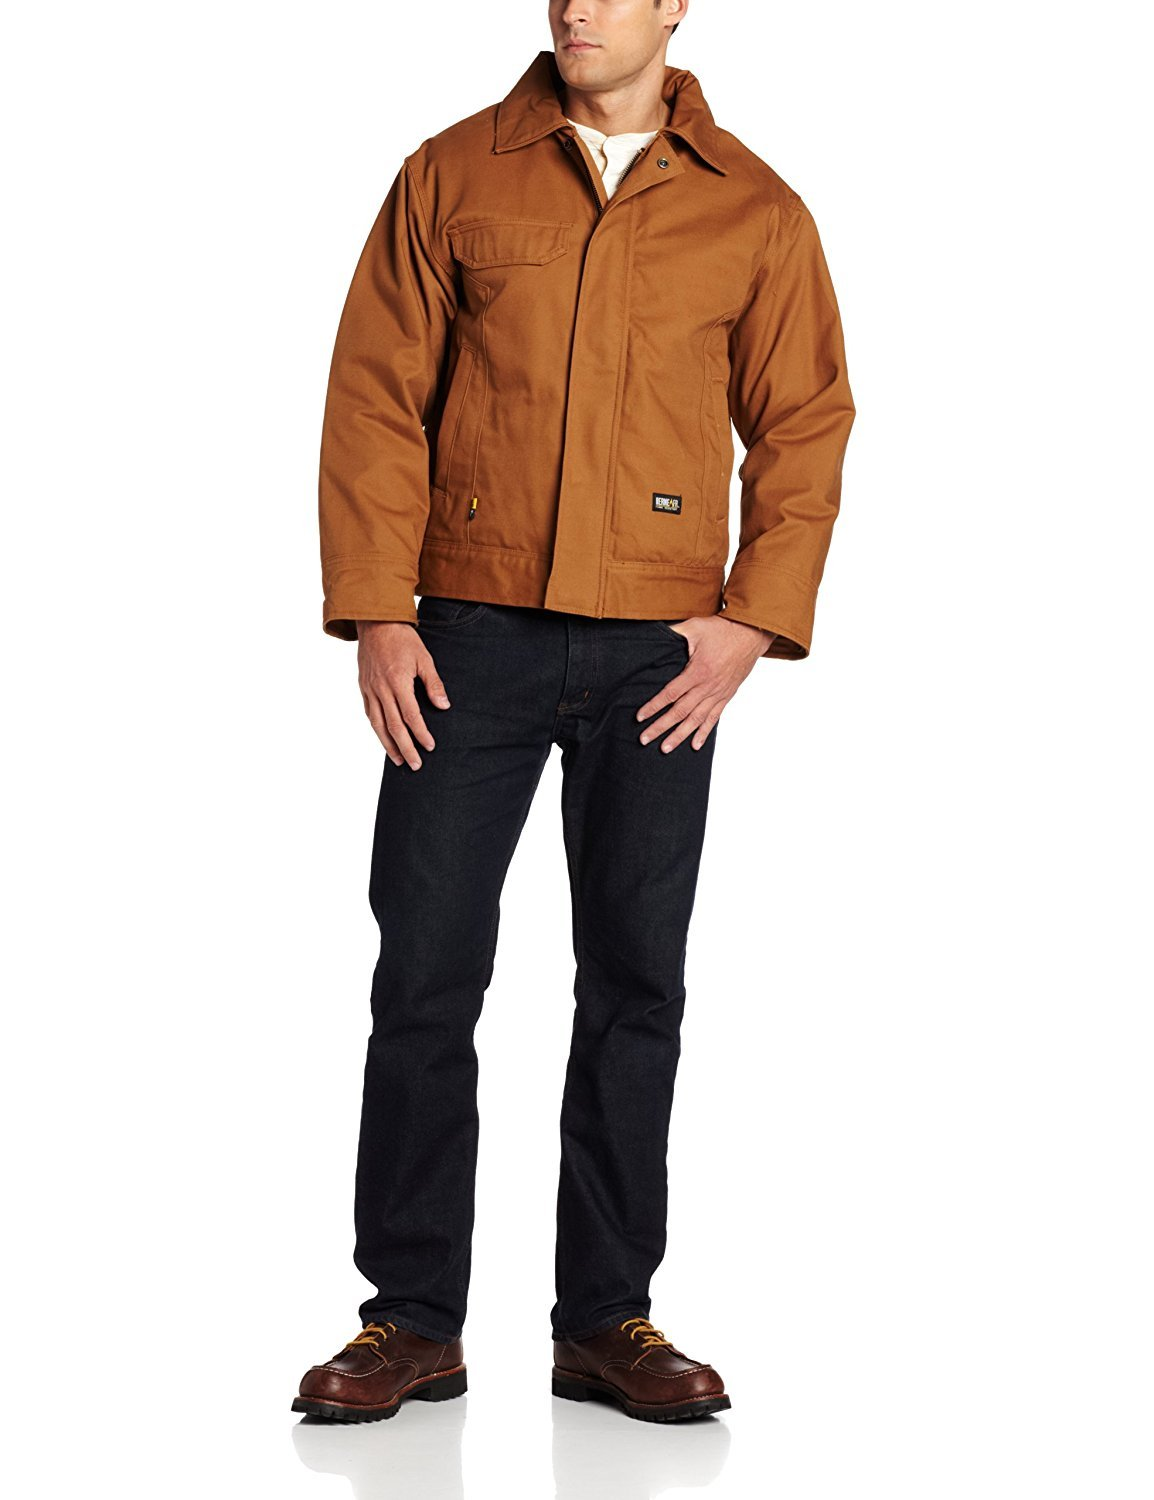 Berne Men's Big-Tall Flame Resistant Bomber Jacket Brown 4X-Large/Tall [並行輸入品] B077QG2NDL